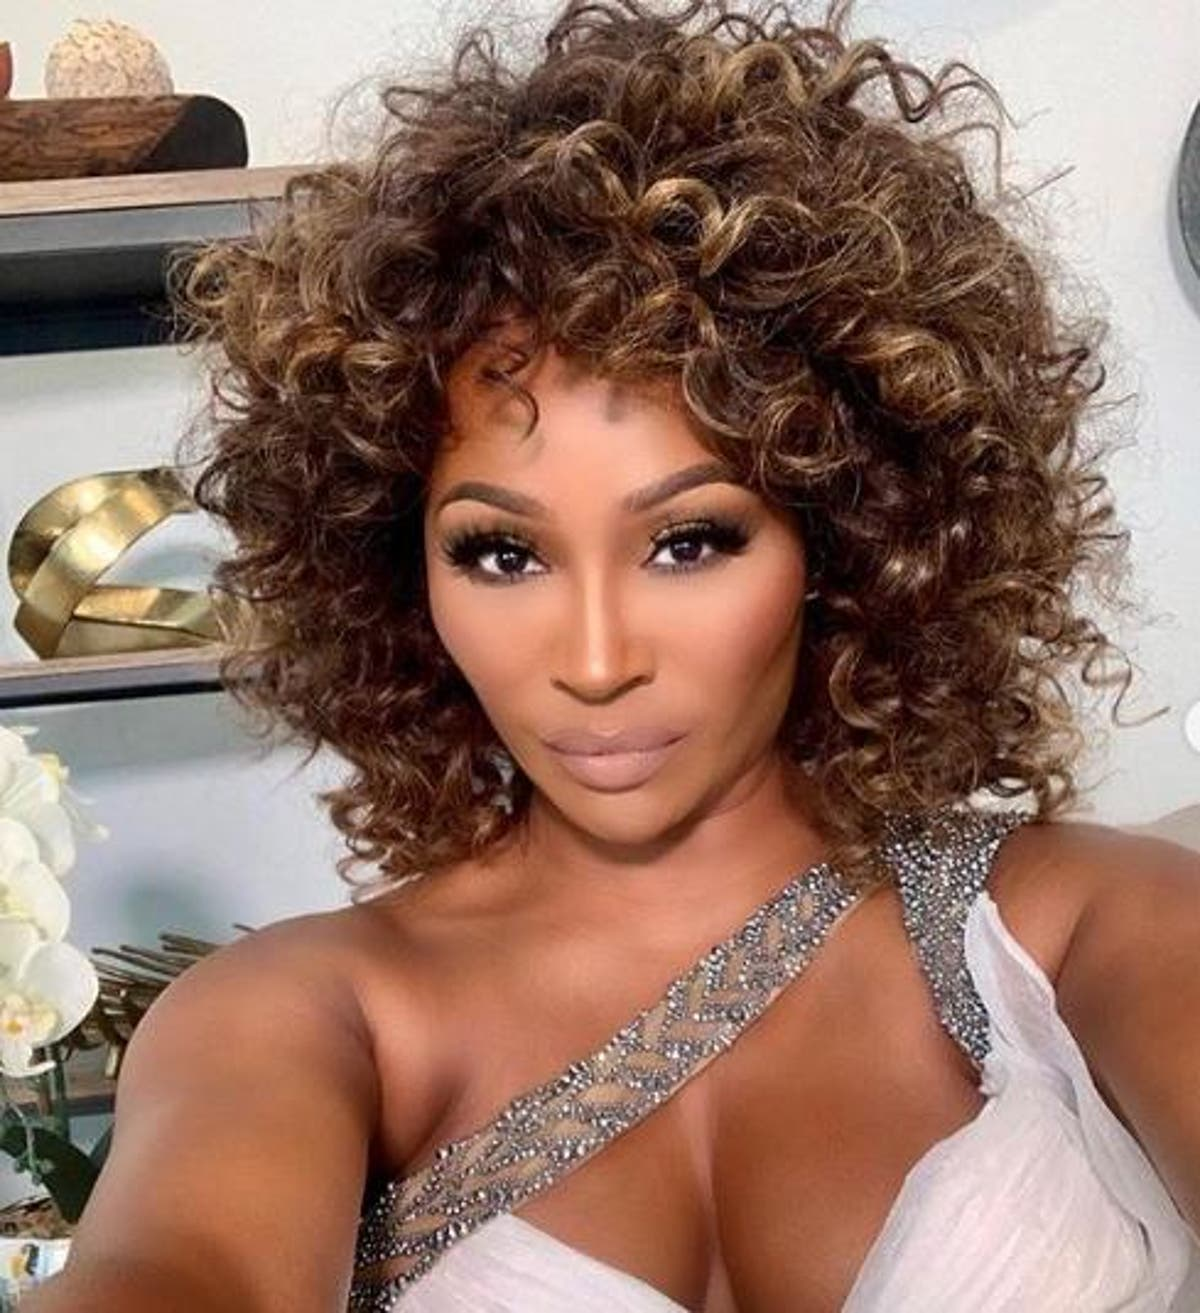 Cynthia Bailey Shows Fans A Throwback Photo From When She Used To Have Short Hair – She Looks Like Her Daughter, Noelle Robinson